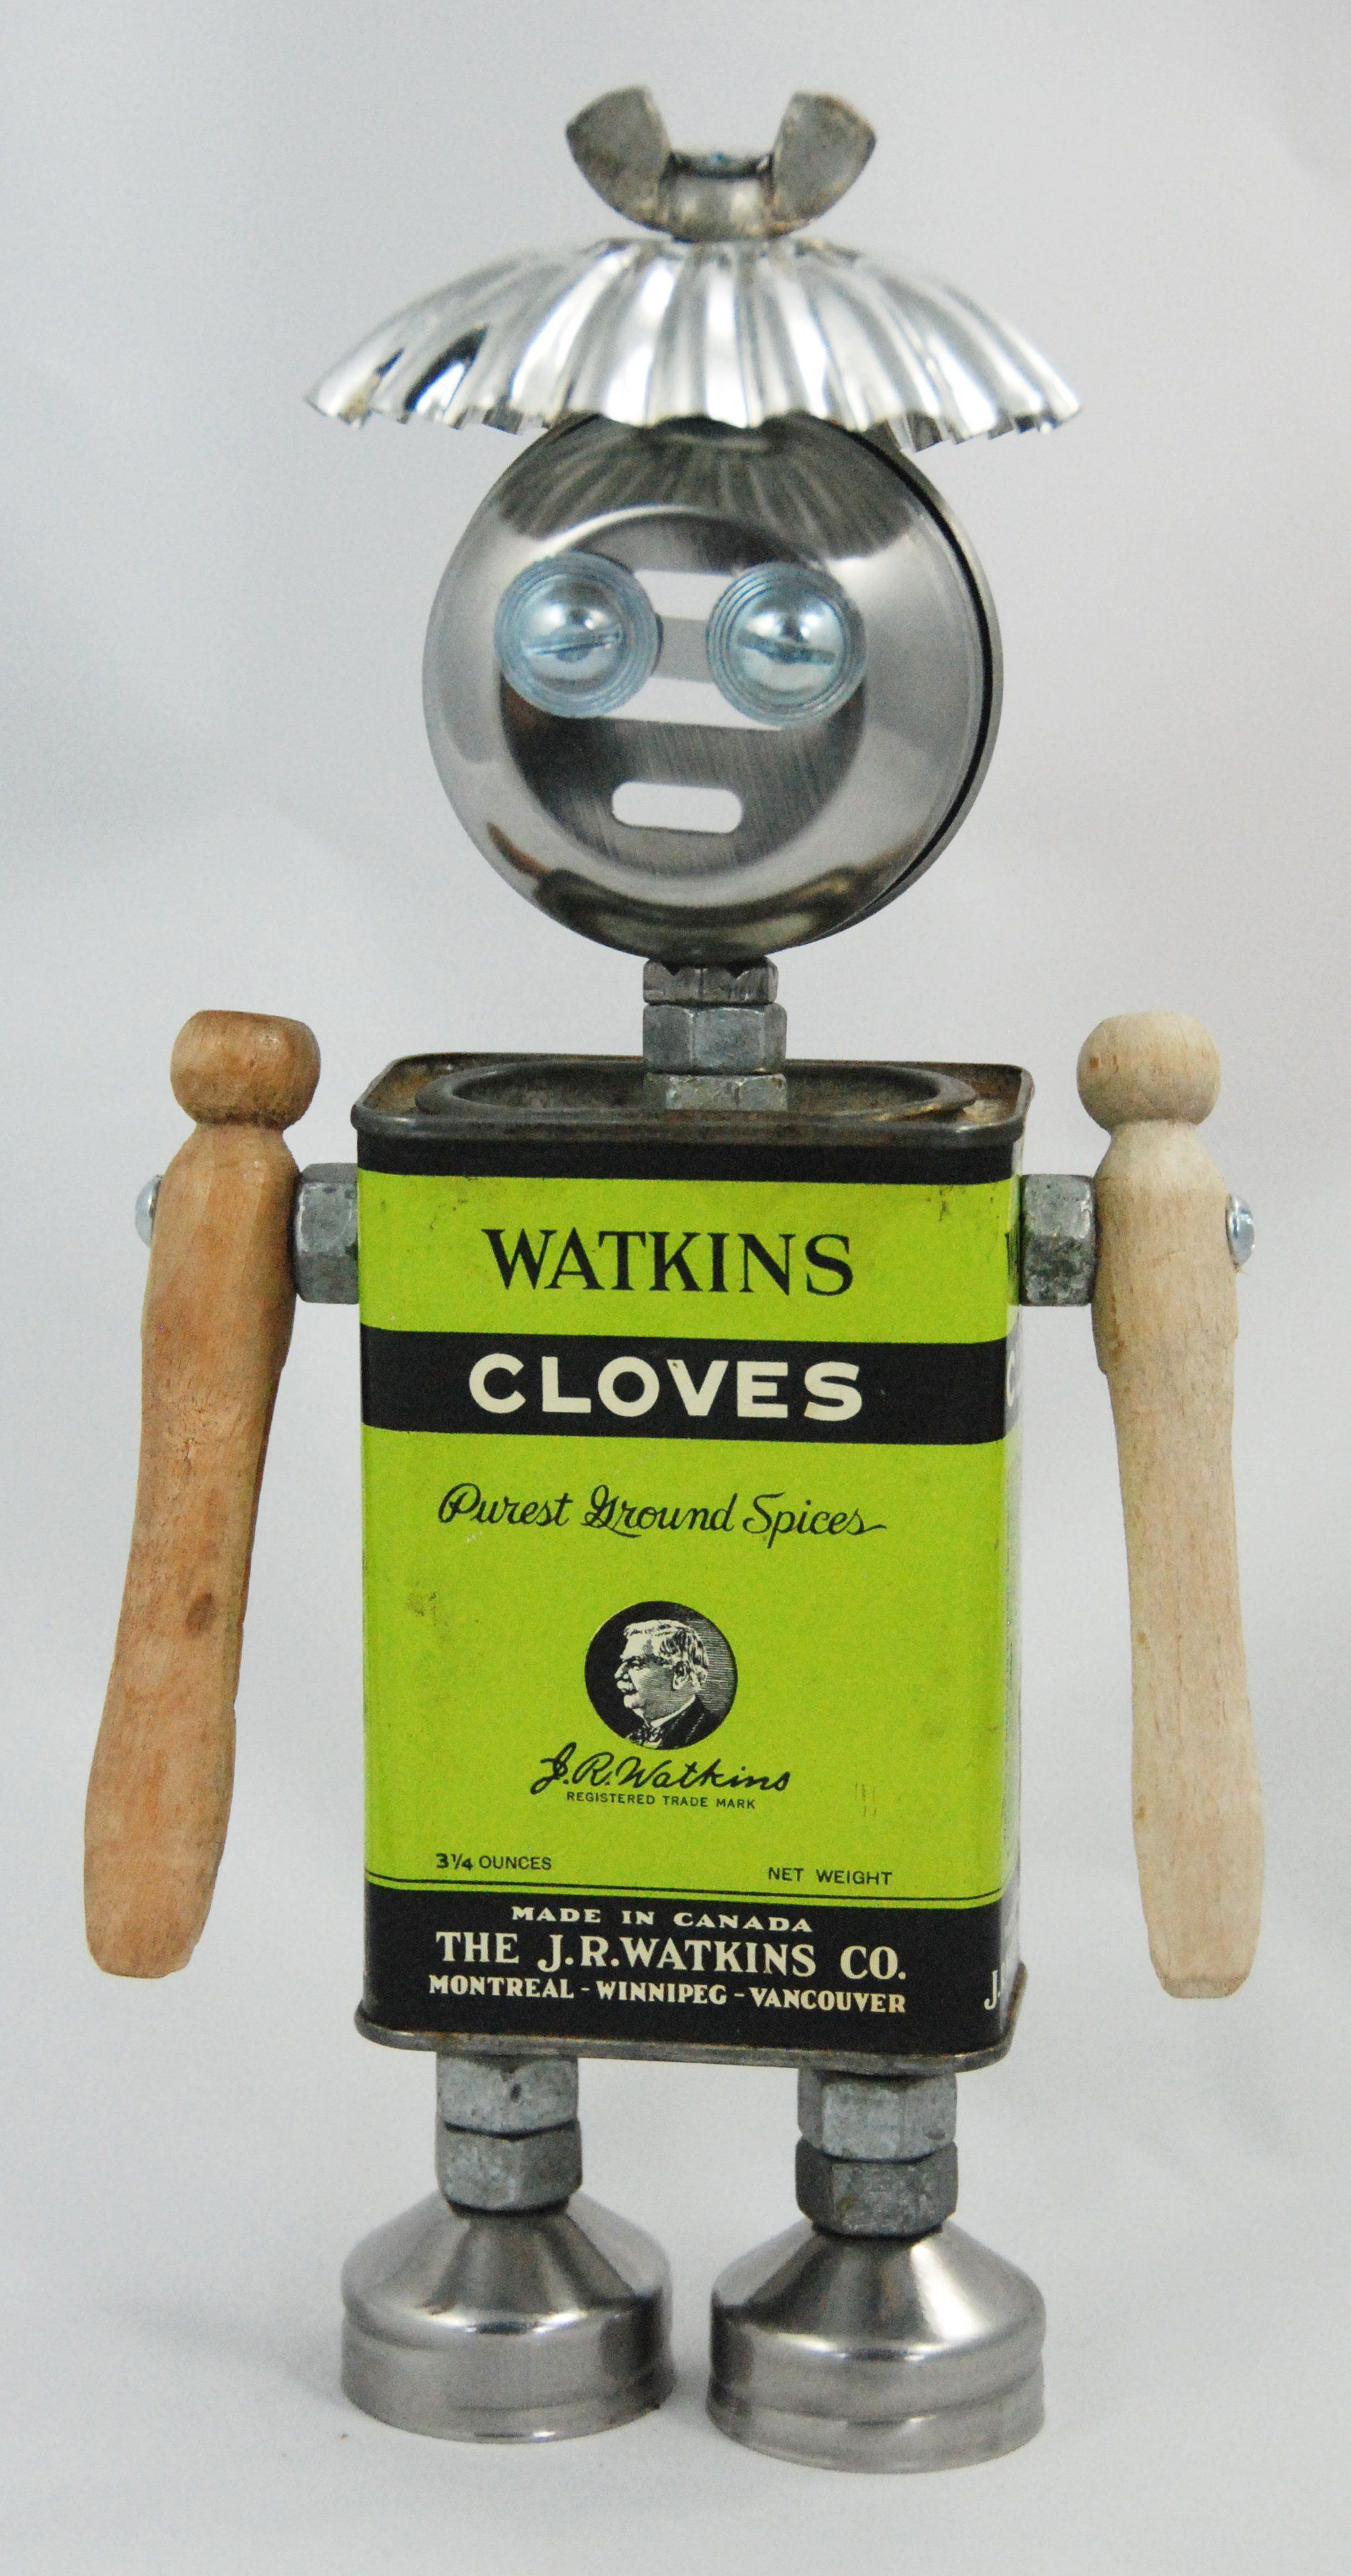 Clover Size 9 Inches Tall Medium Vintage Watkins Cloves Tin Vintage Sugar Lid Tartlet Tin Vintage Wooden Clothes Pins Vintage Salt And Pepper Lids Wing N